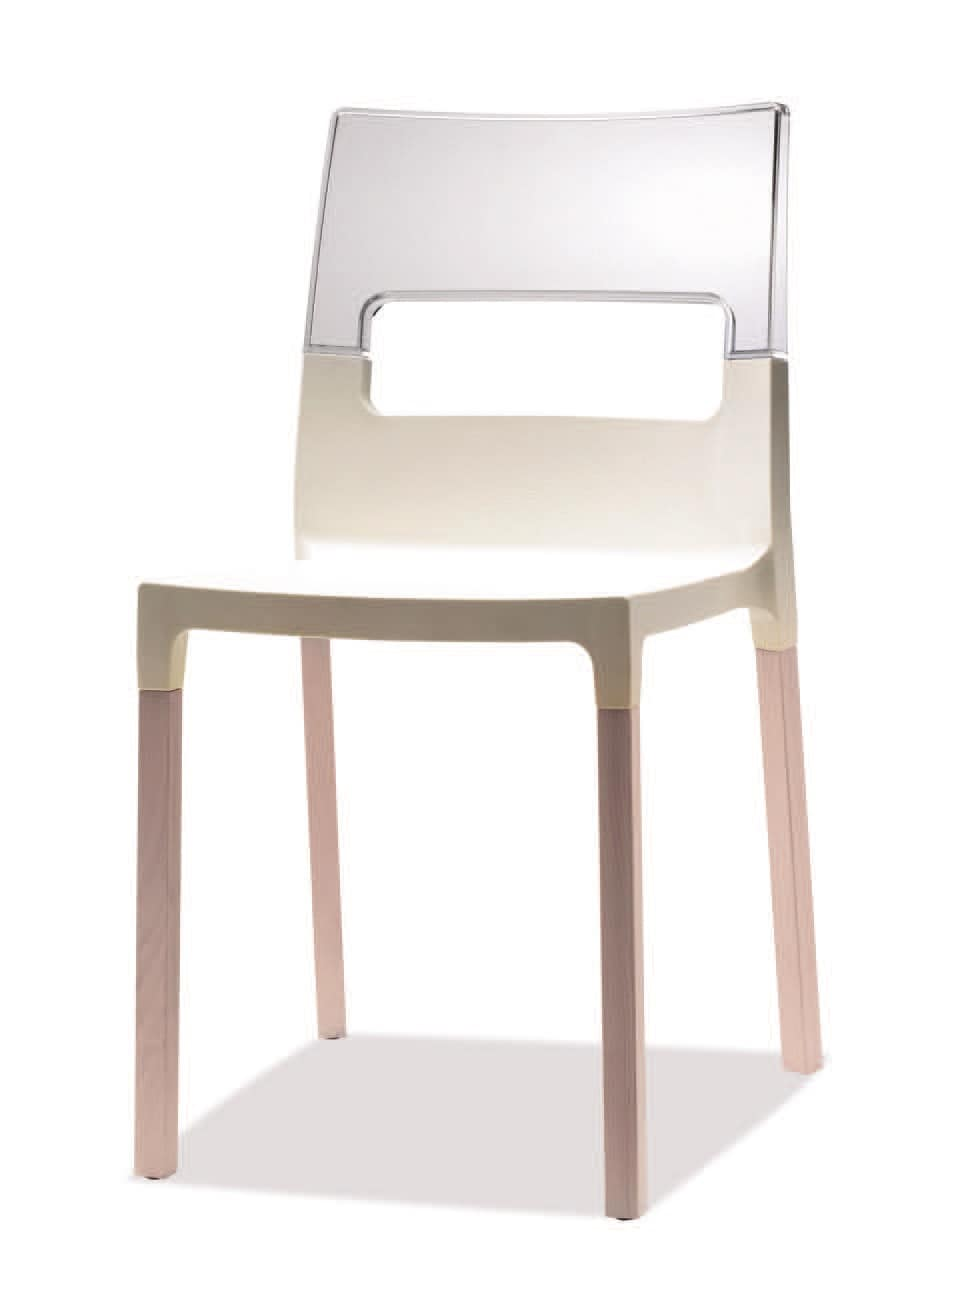 SE 2015, Chair in beech and technopolymer, stackable and comfortable